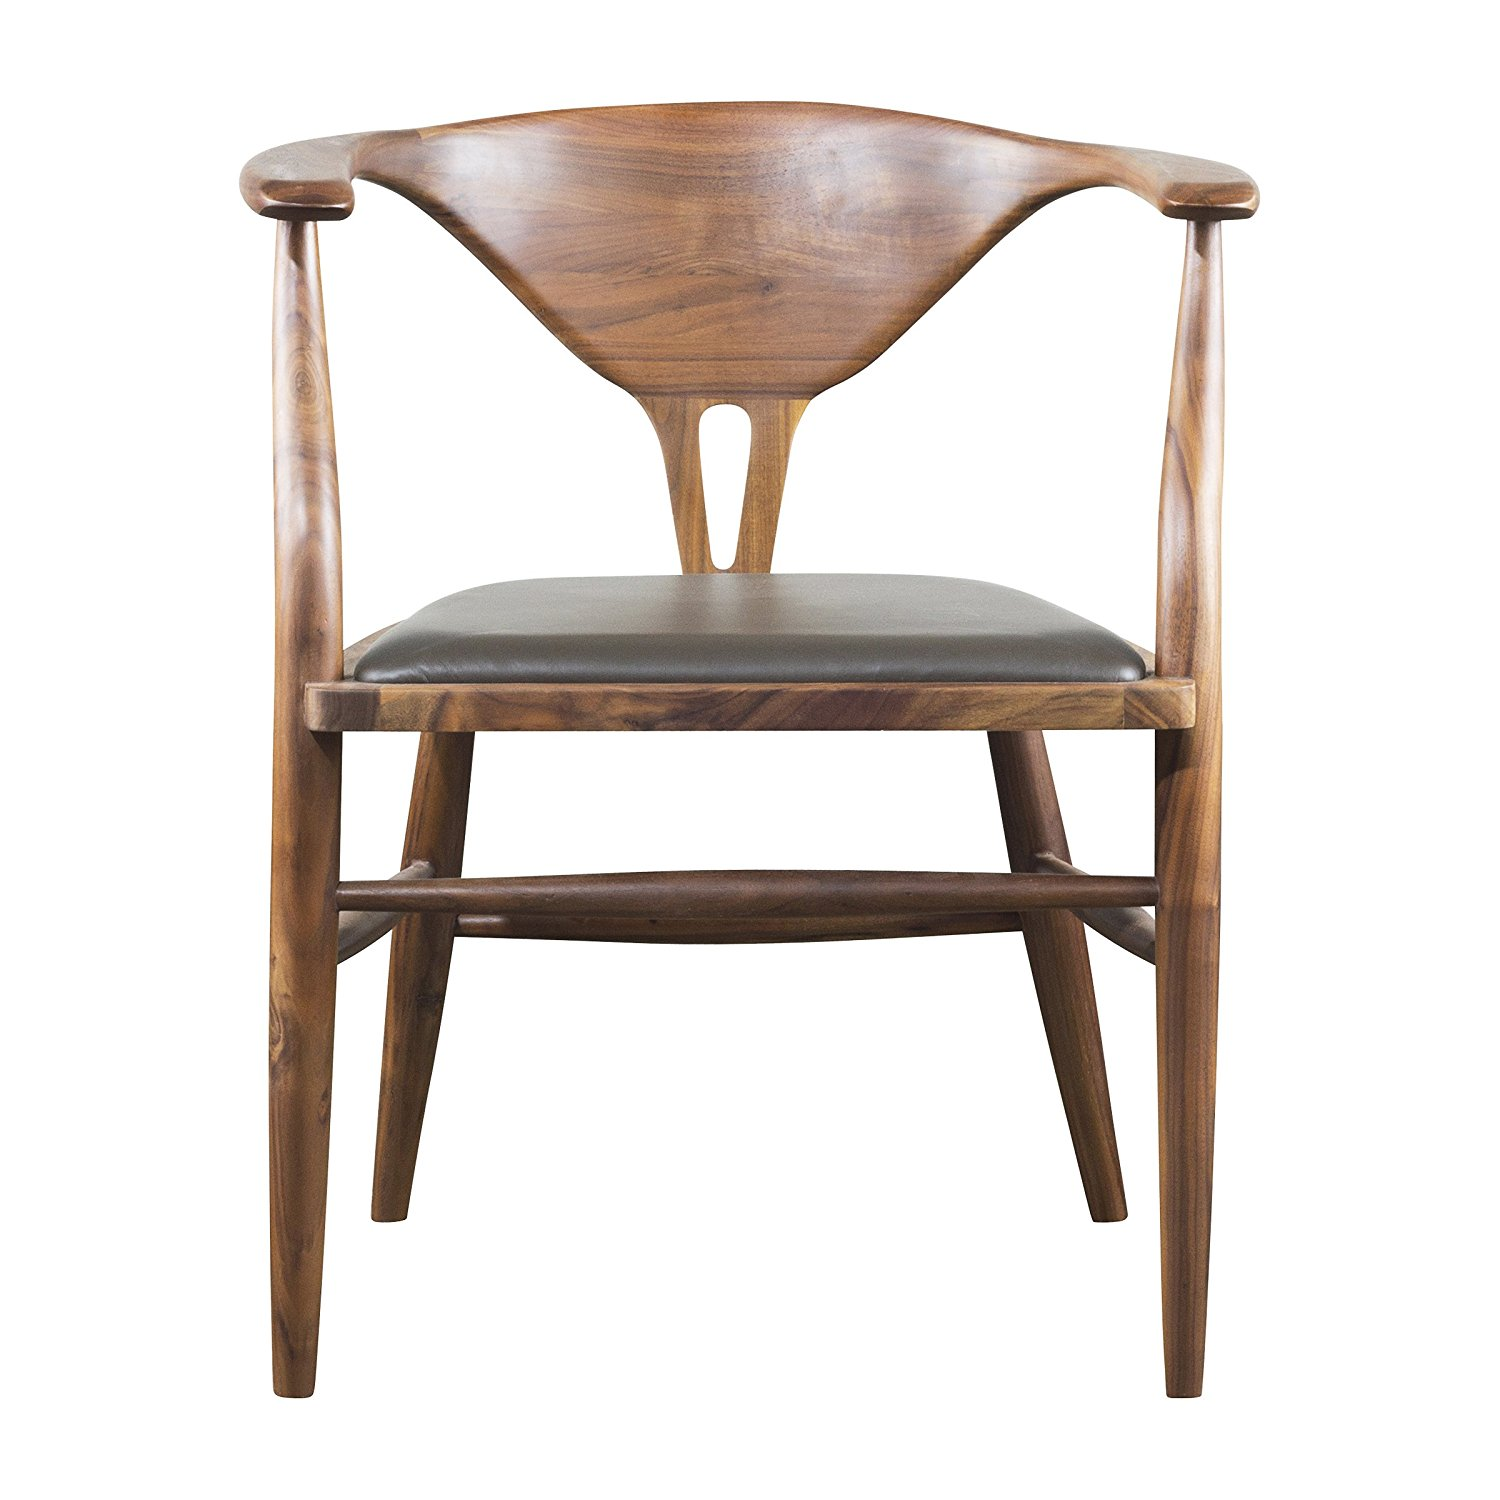 H.D. Buttercup Peking Modern Dining Chair in Walnut, Mid Century Modern Chair, Olive